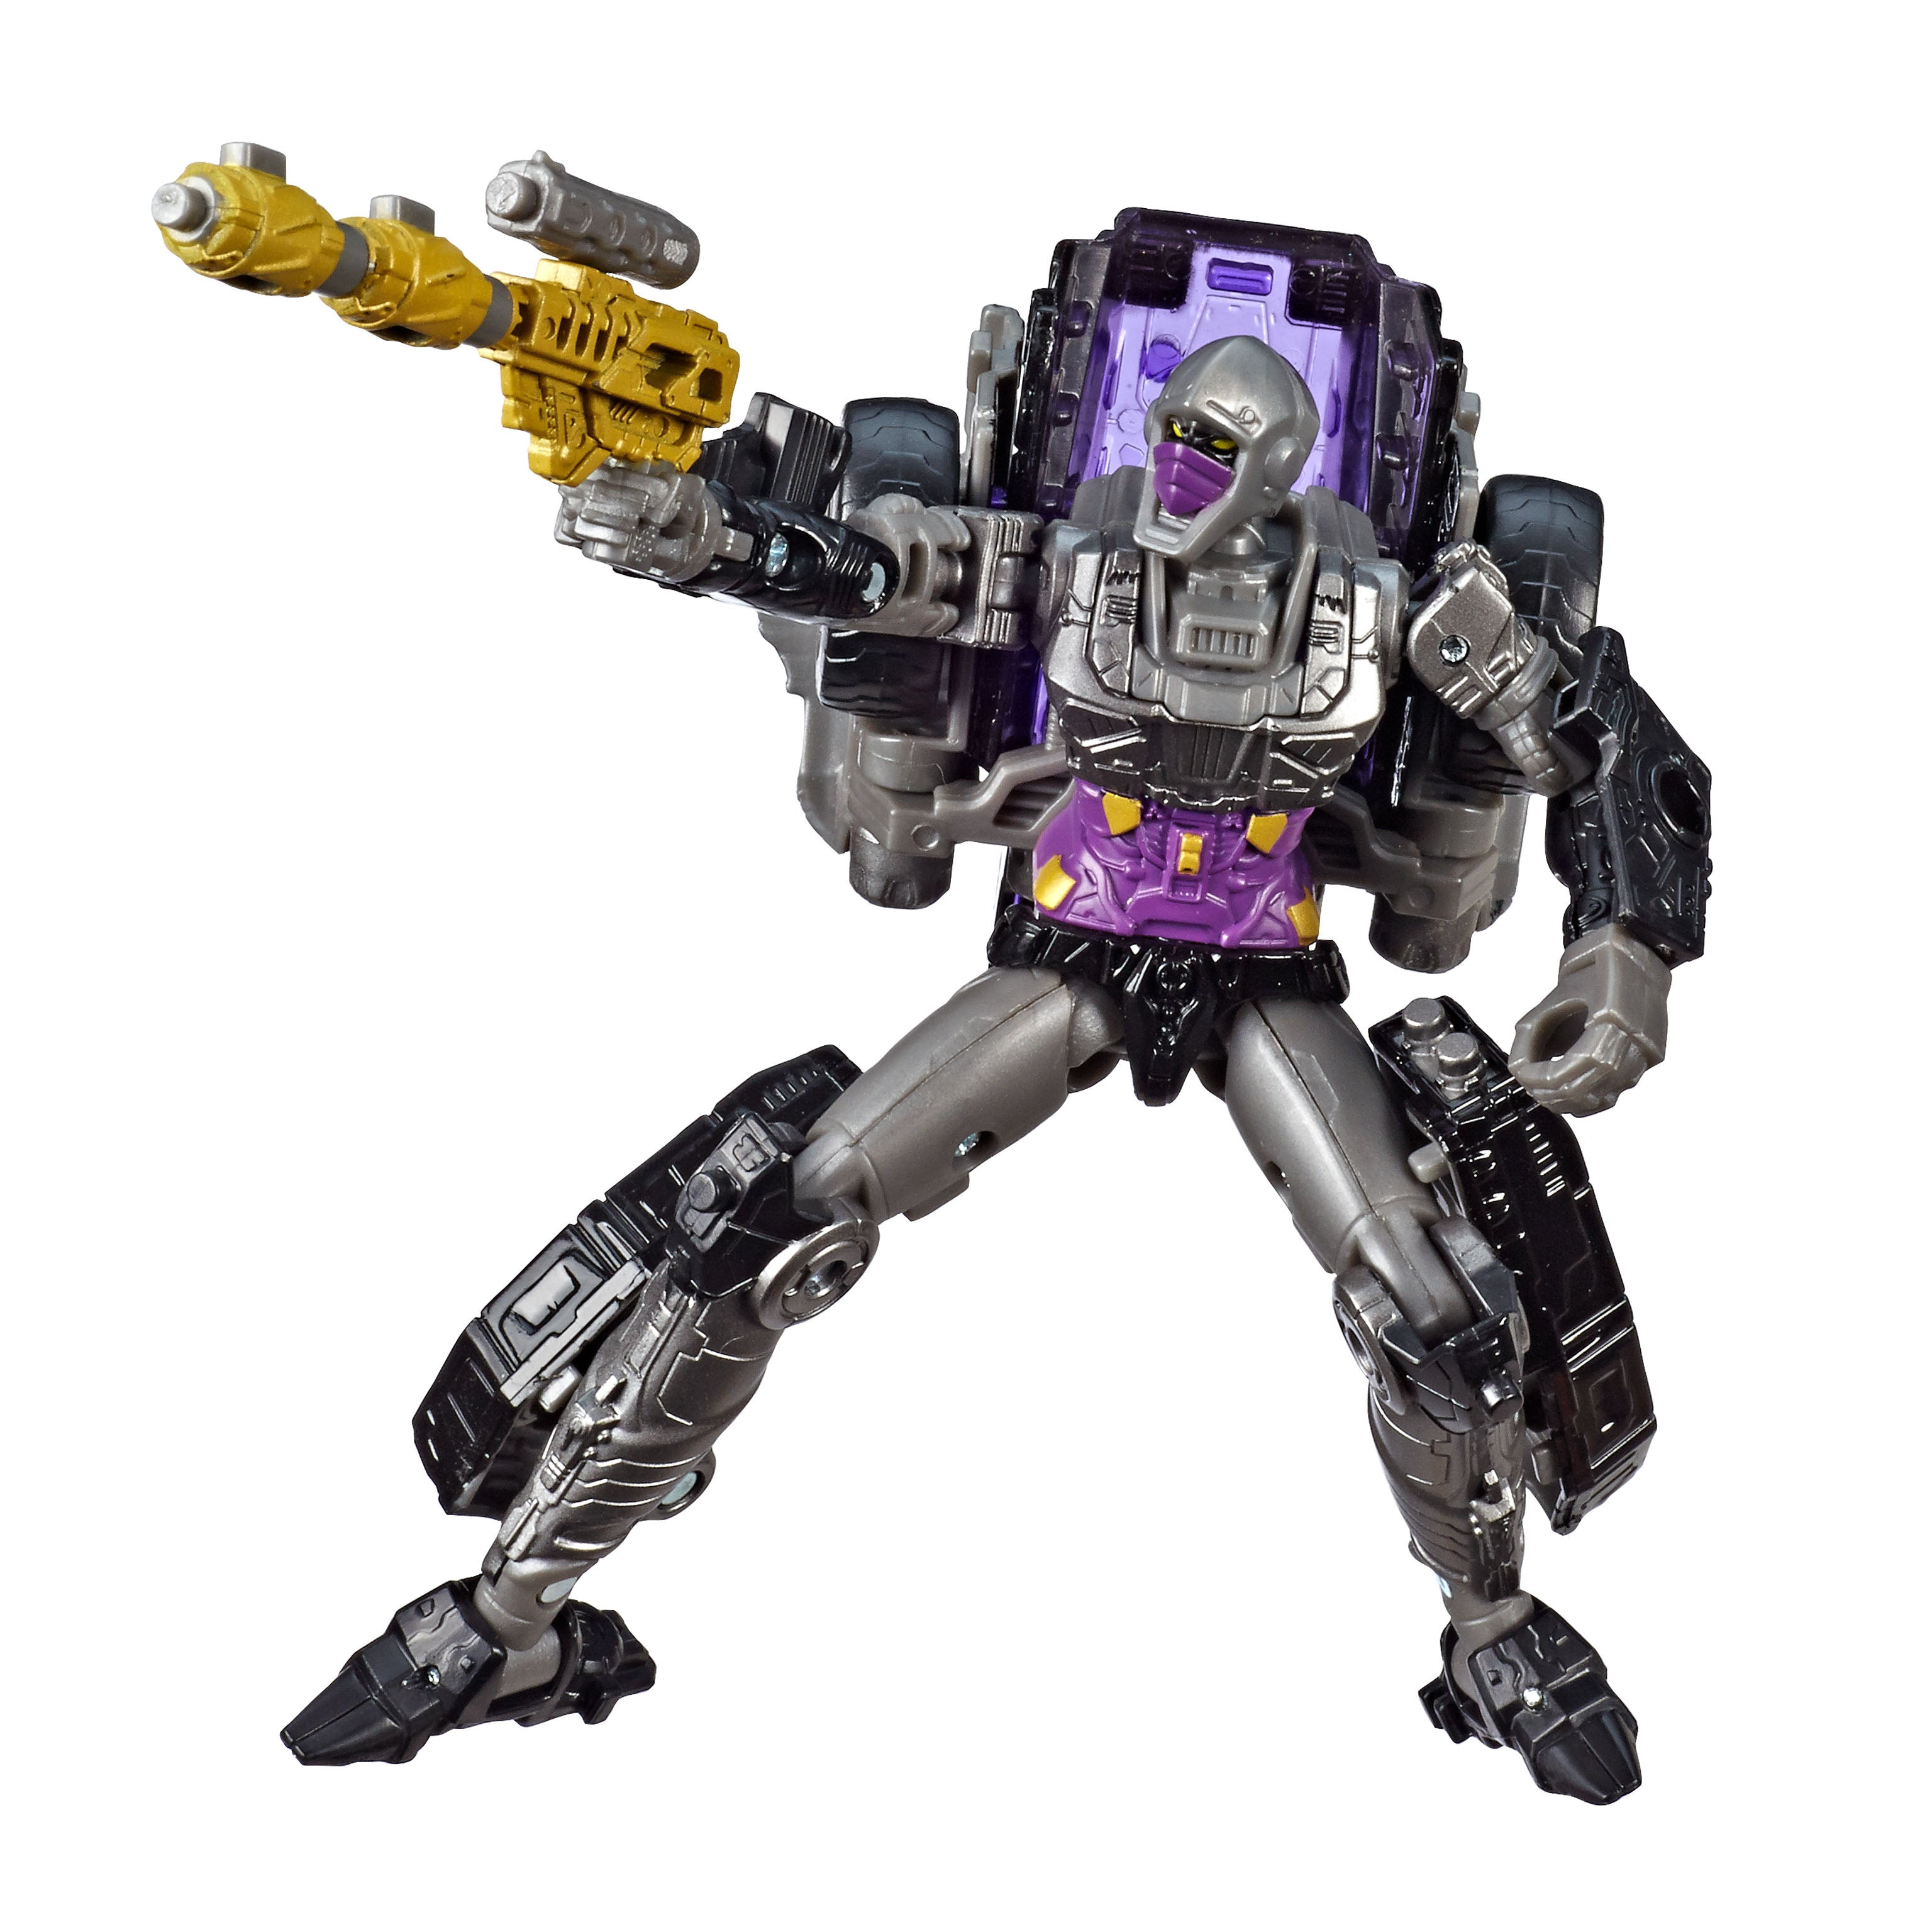 Image of Transformers Generations Selects War for Cybertron Deluxe WFC-GS07 Nightbird Exclusive